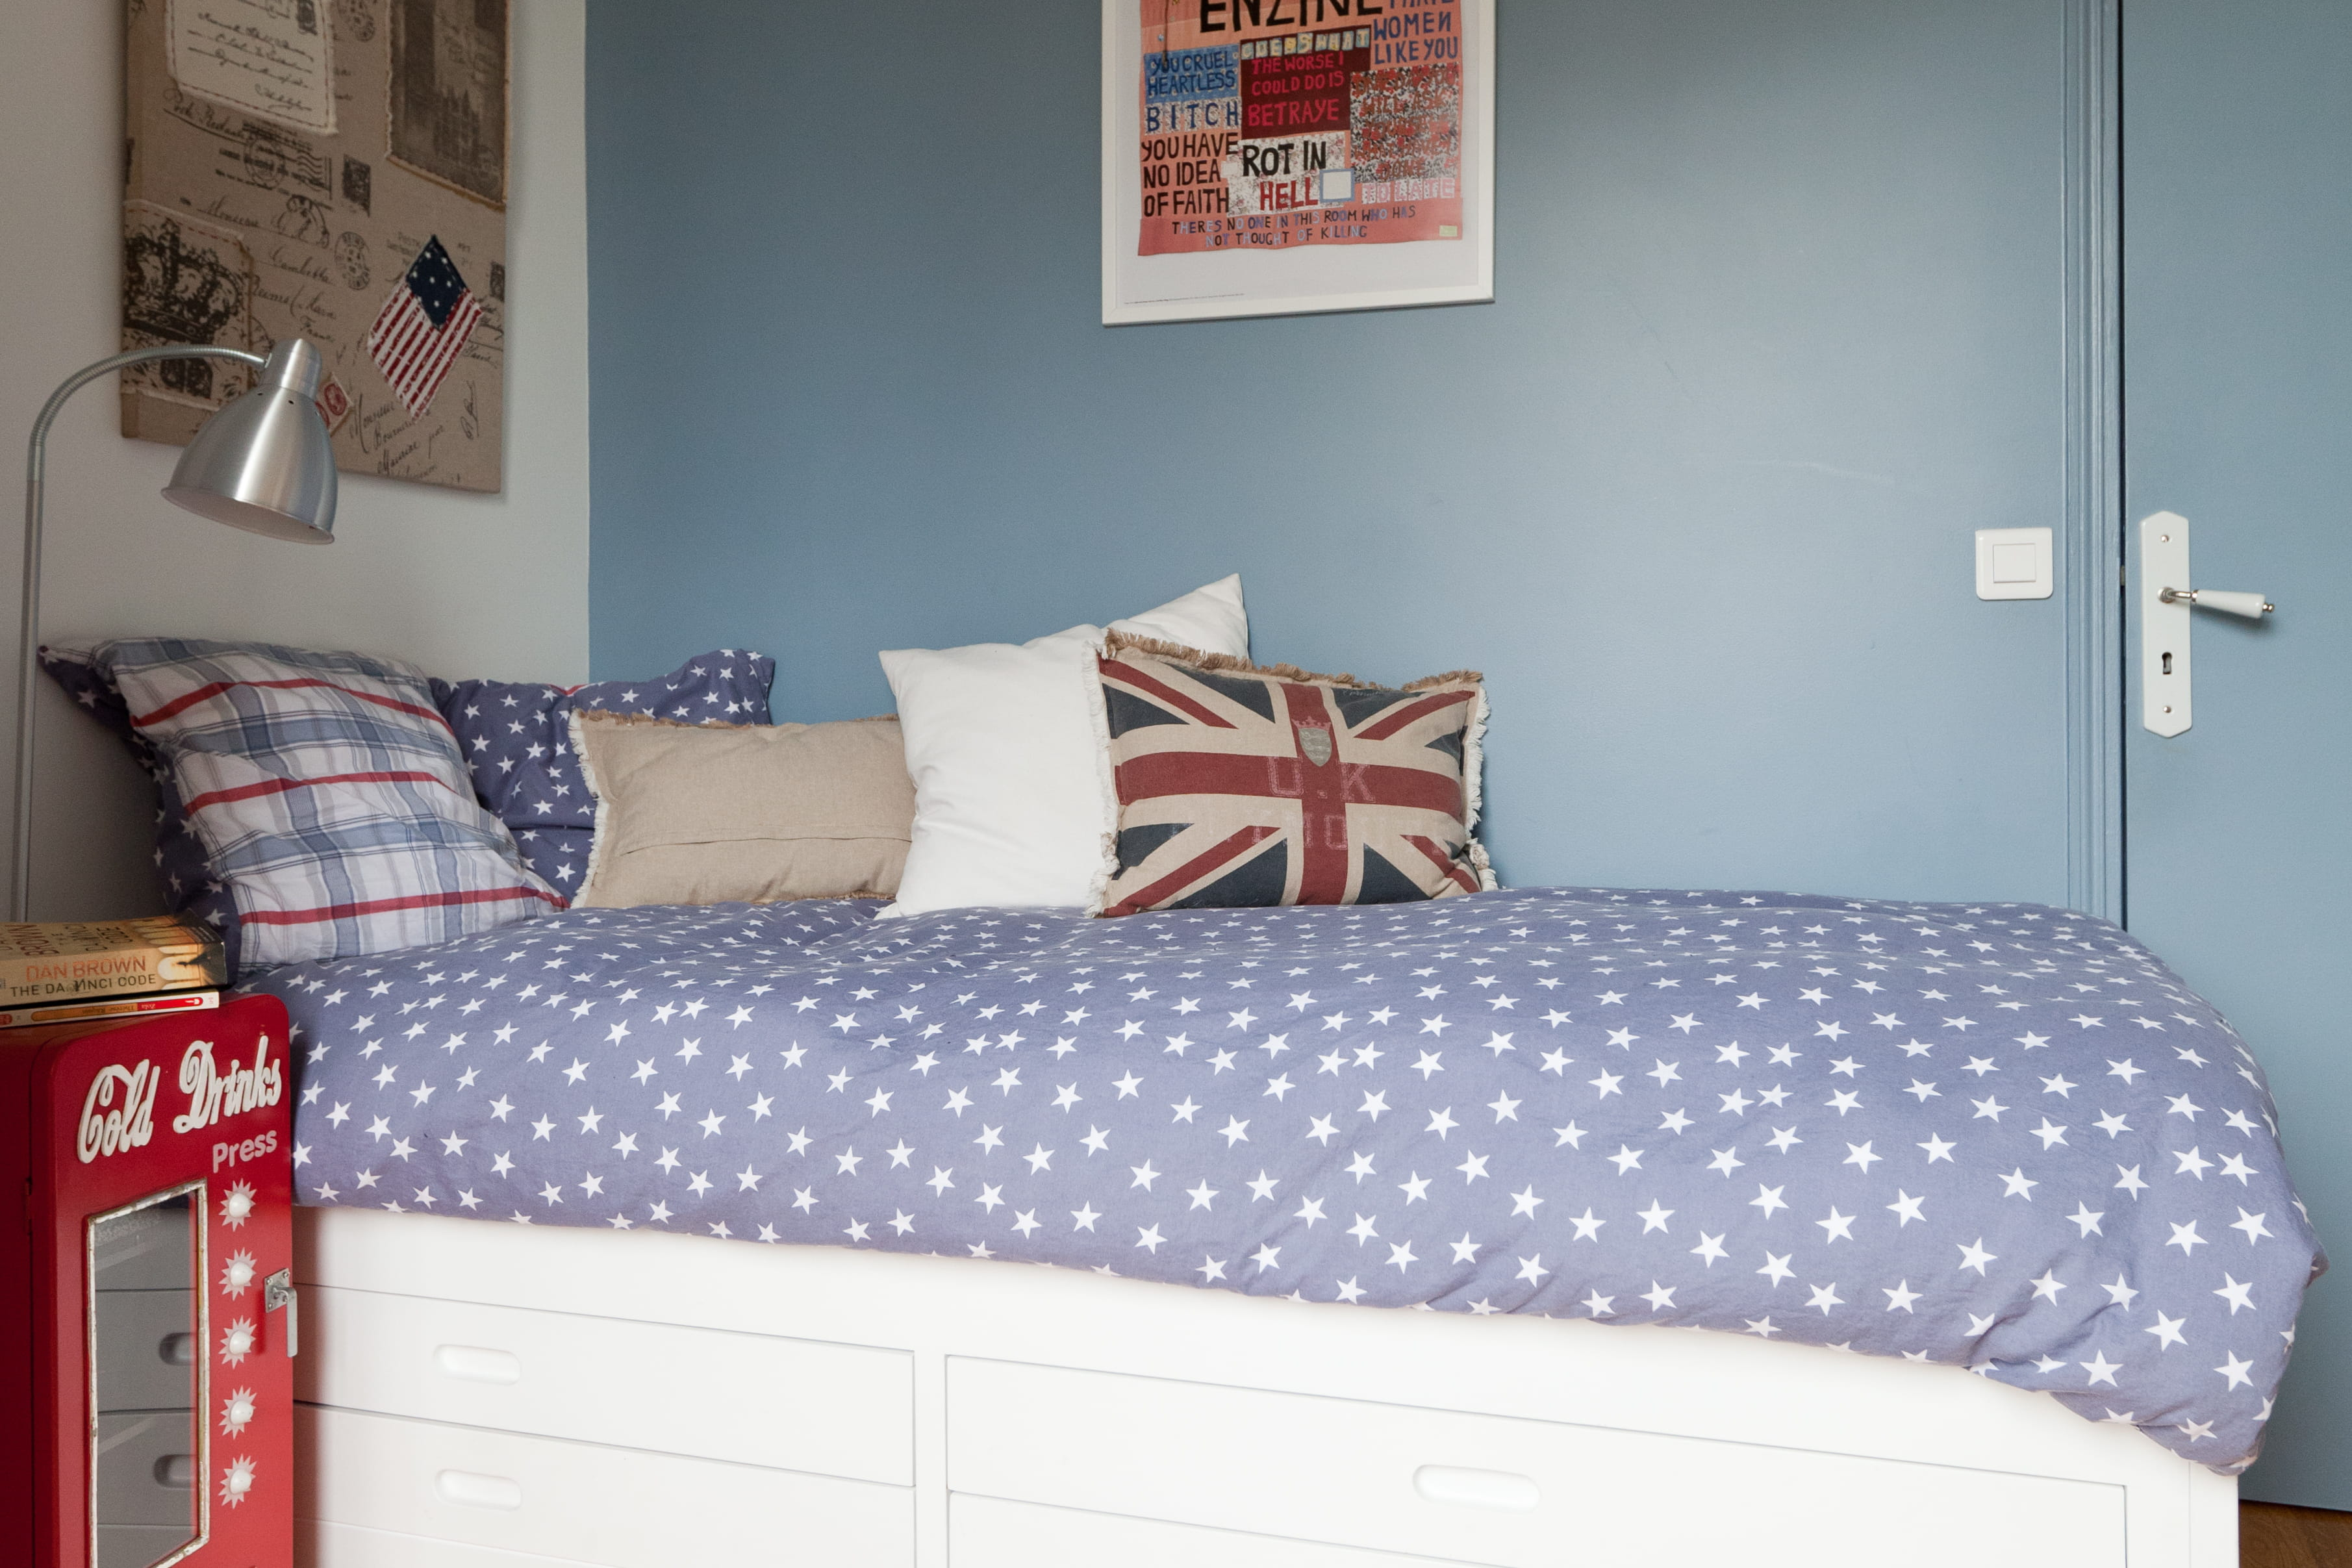 Idee deco chambre ado fille pas cher - Idees couleur chambre ...